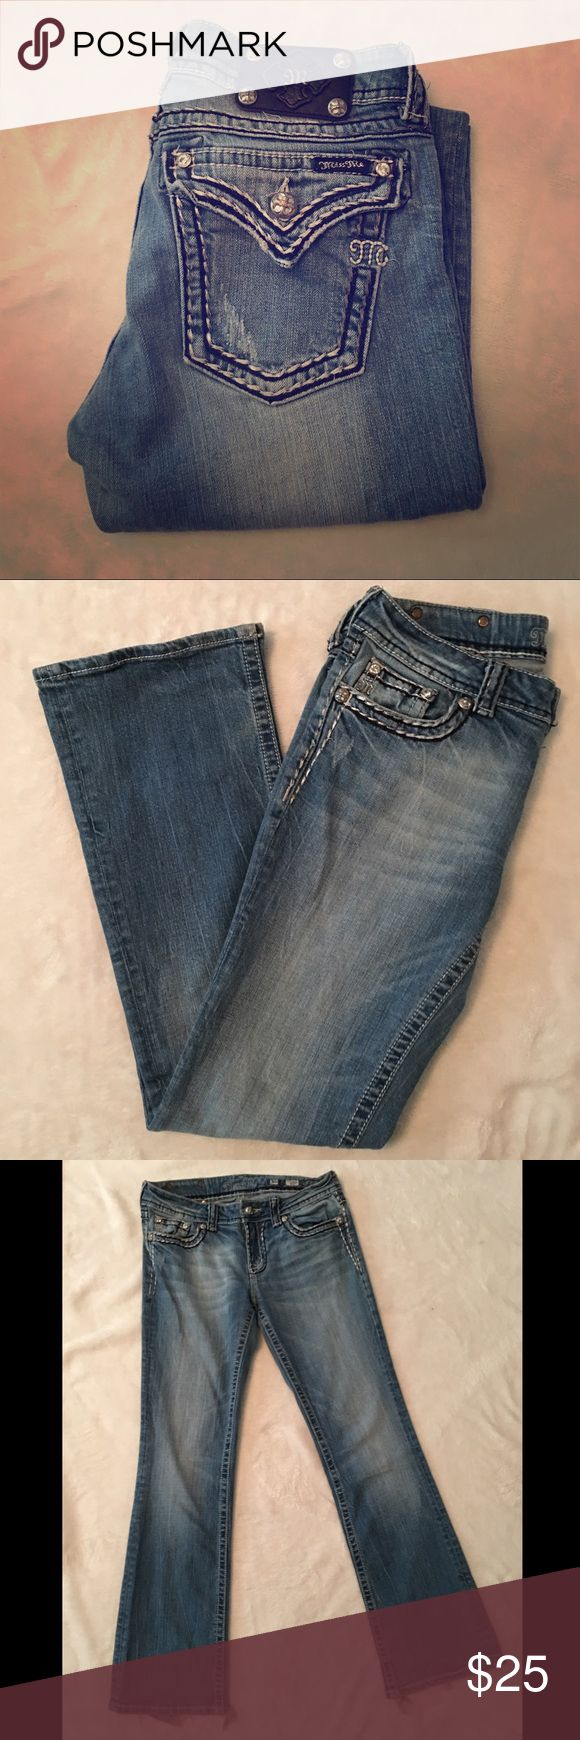 MISS ME jeans JS5014B32V BOOT design MISS ME jeans. These jeans have had lots of love, but still have lots of life in them! Feel free to ask for measurements as I can provide if needed! Offers welcome! Prompt shipping! Happy poshing!☺️💕 Miss Me Jeans Flare & Wide Leg